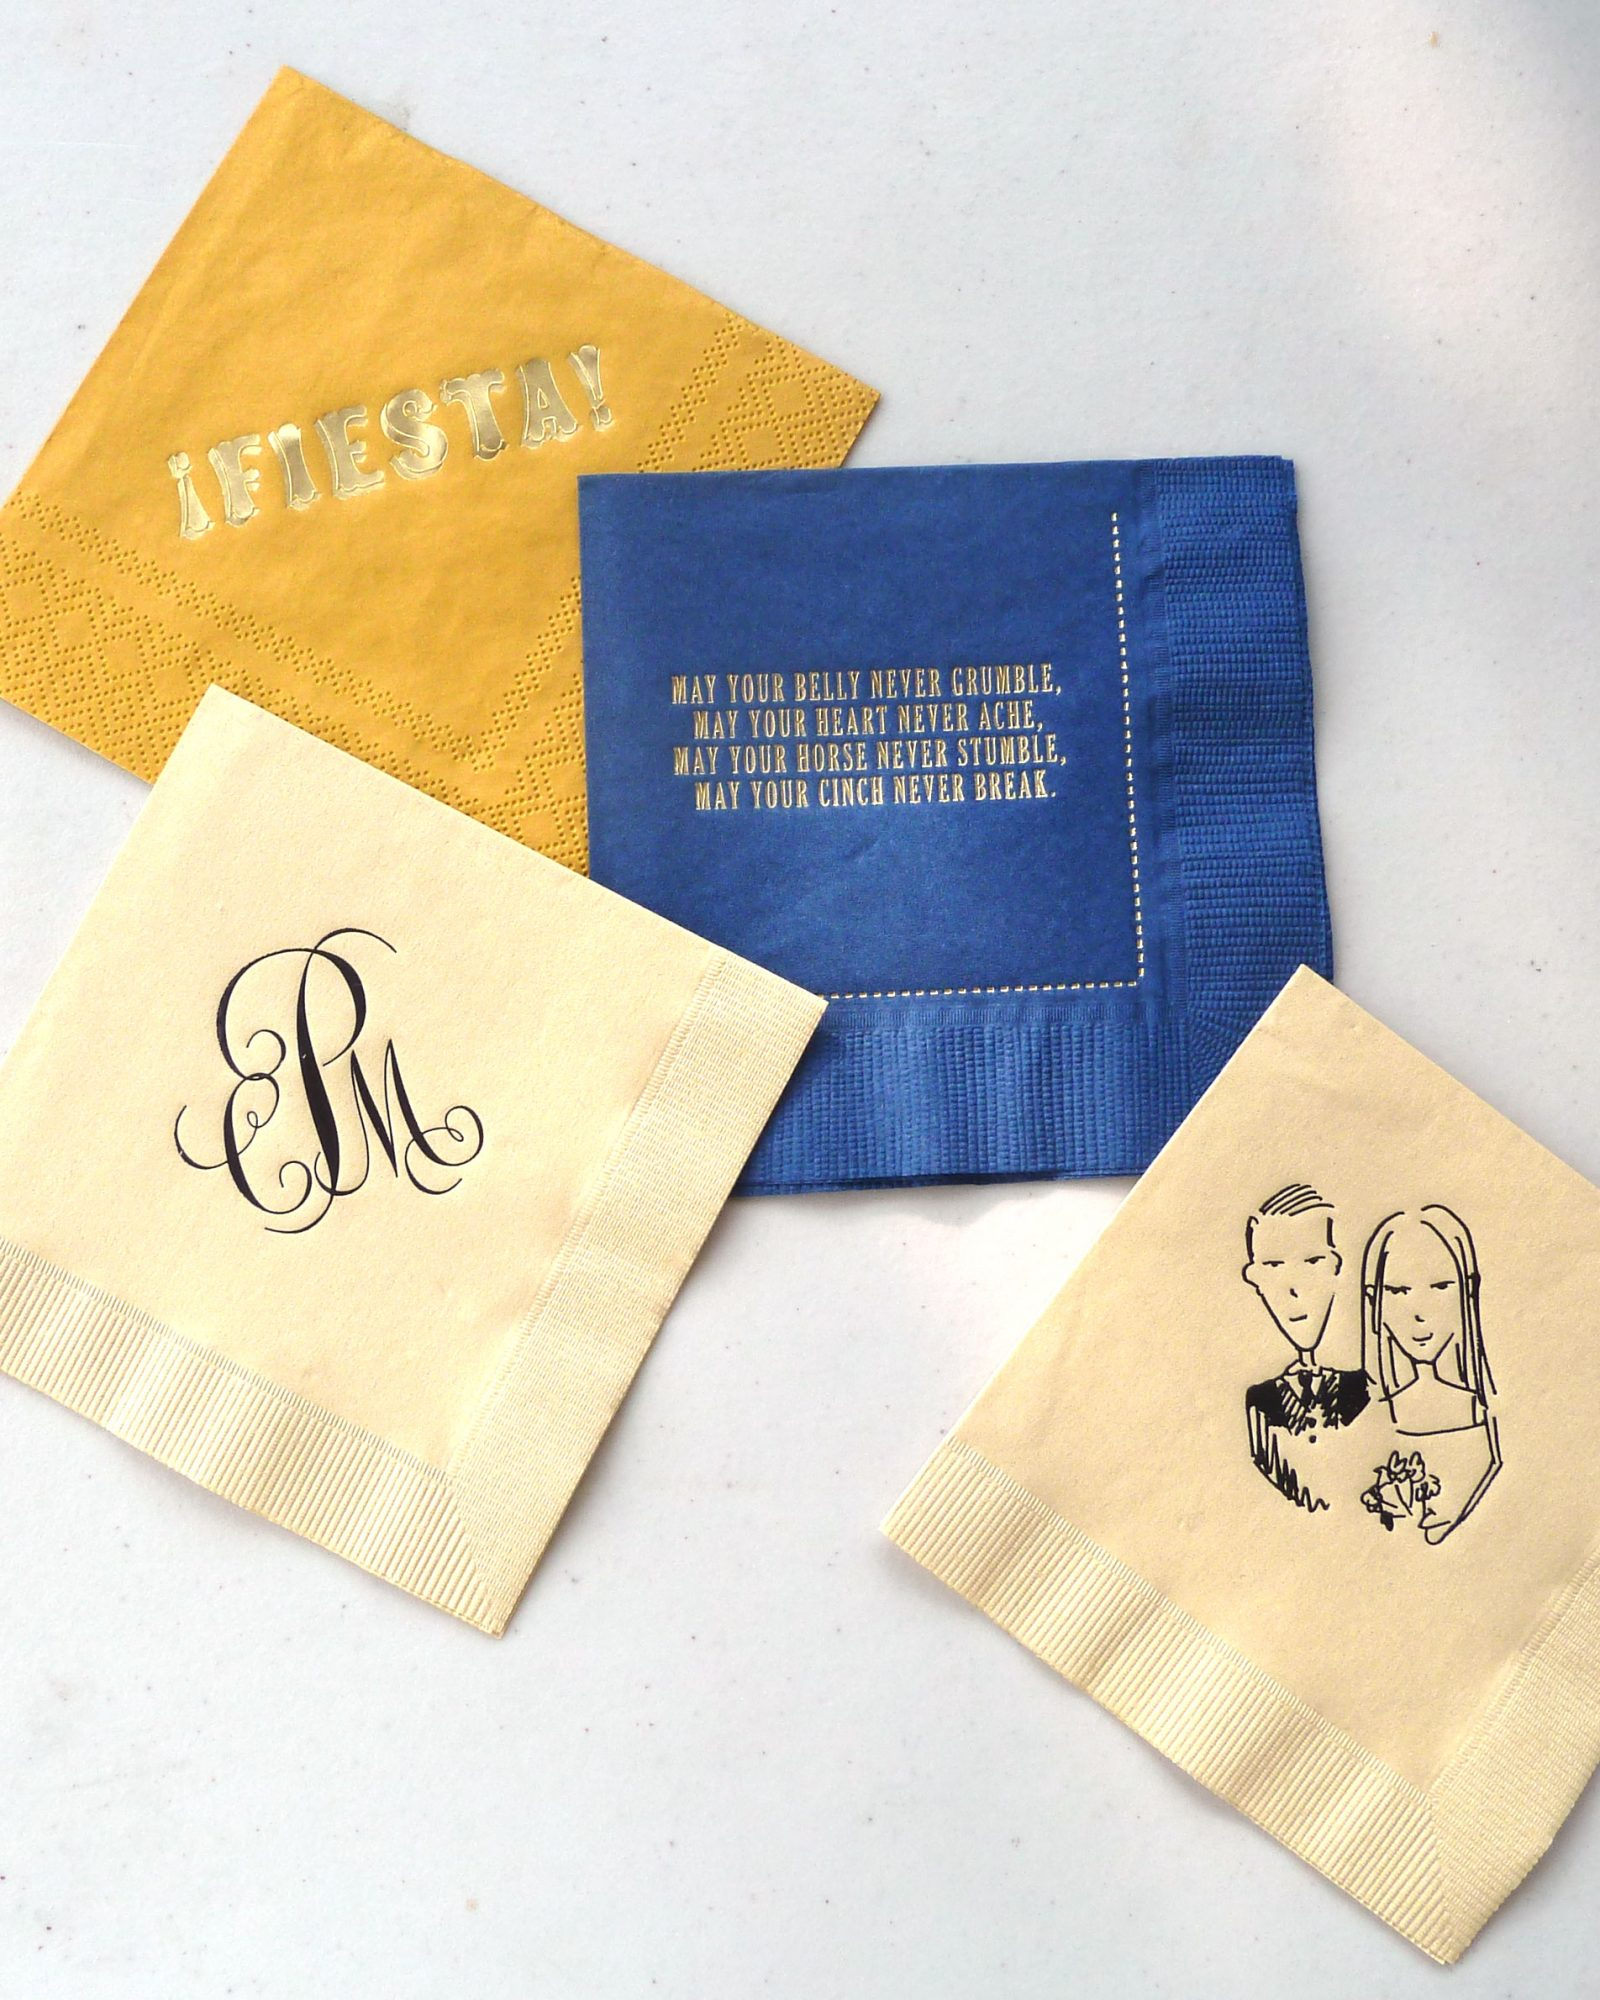 The Custom Cocktail Napkins